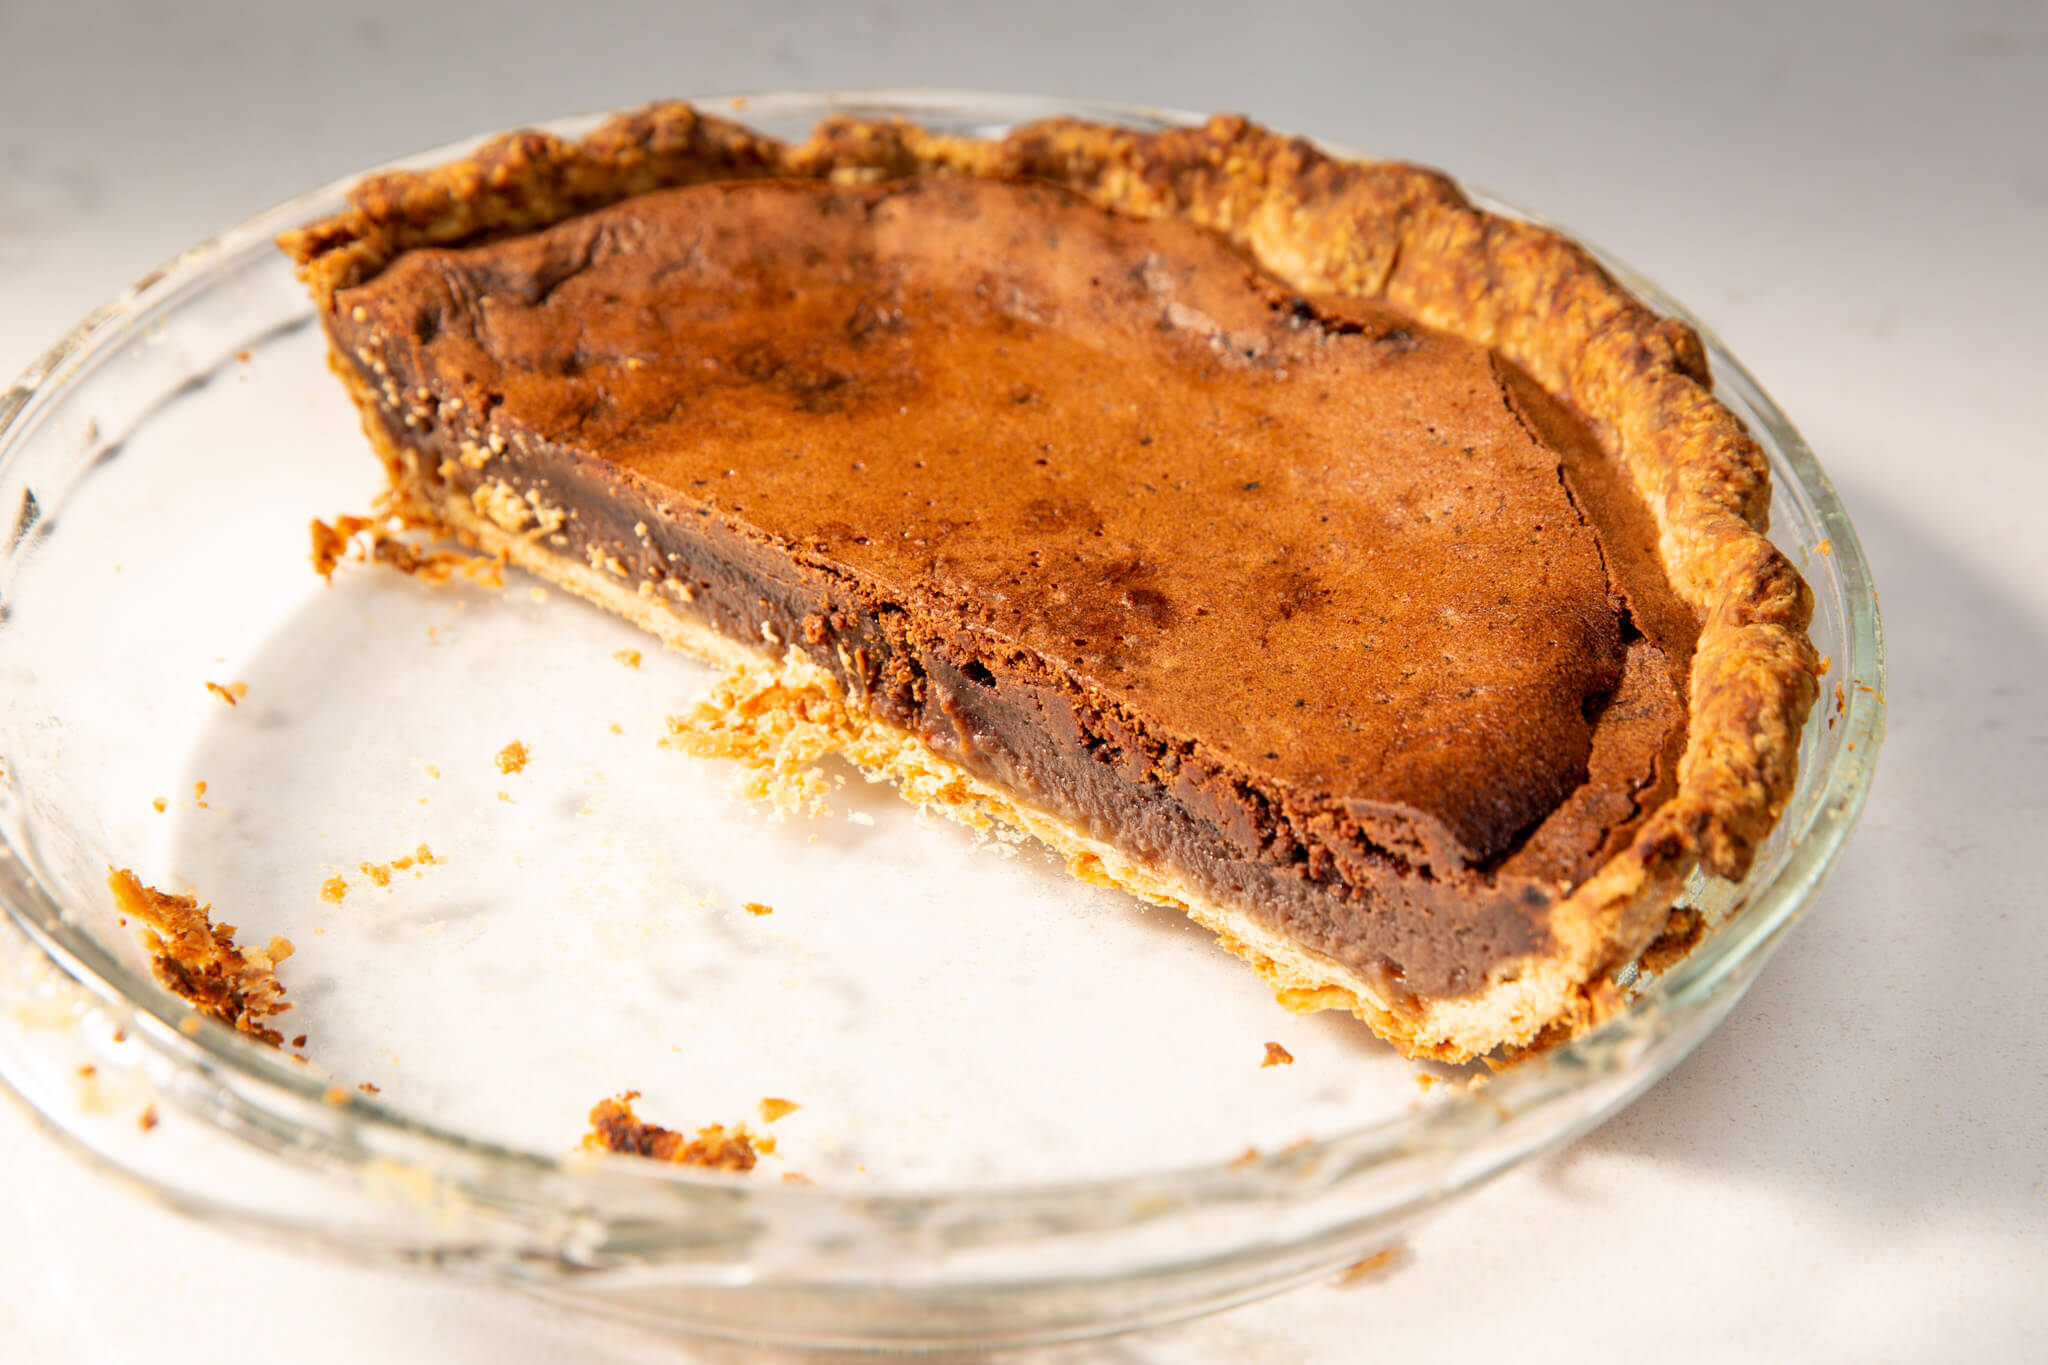 Chocolate chess pie, with half remaining